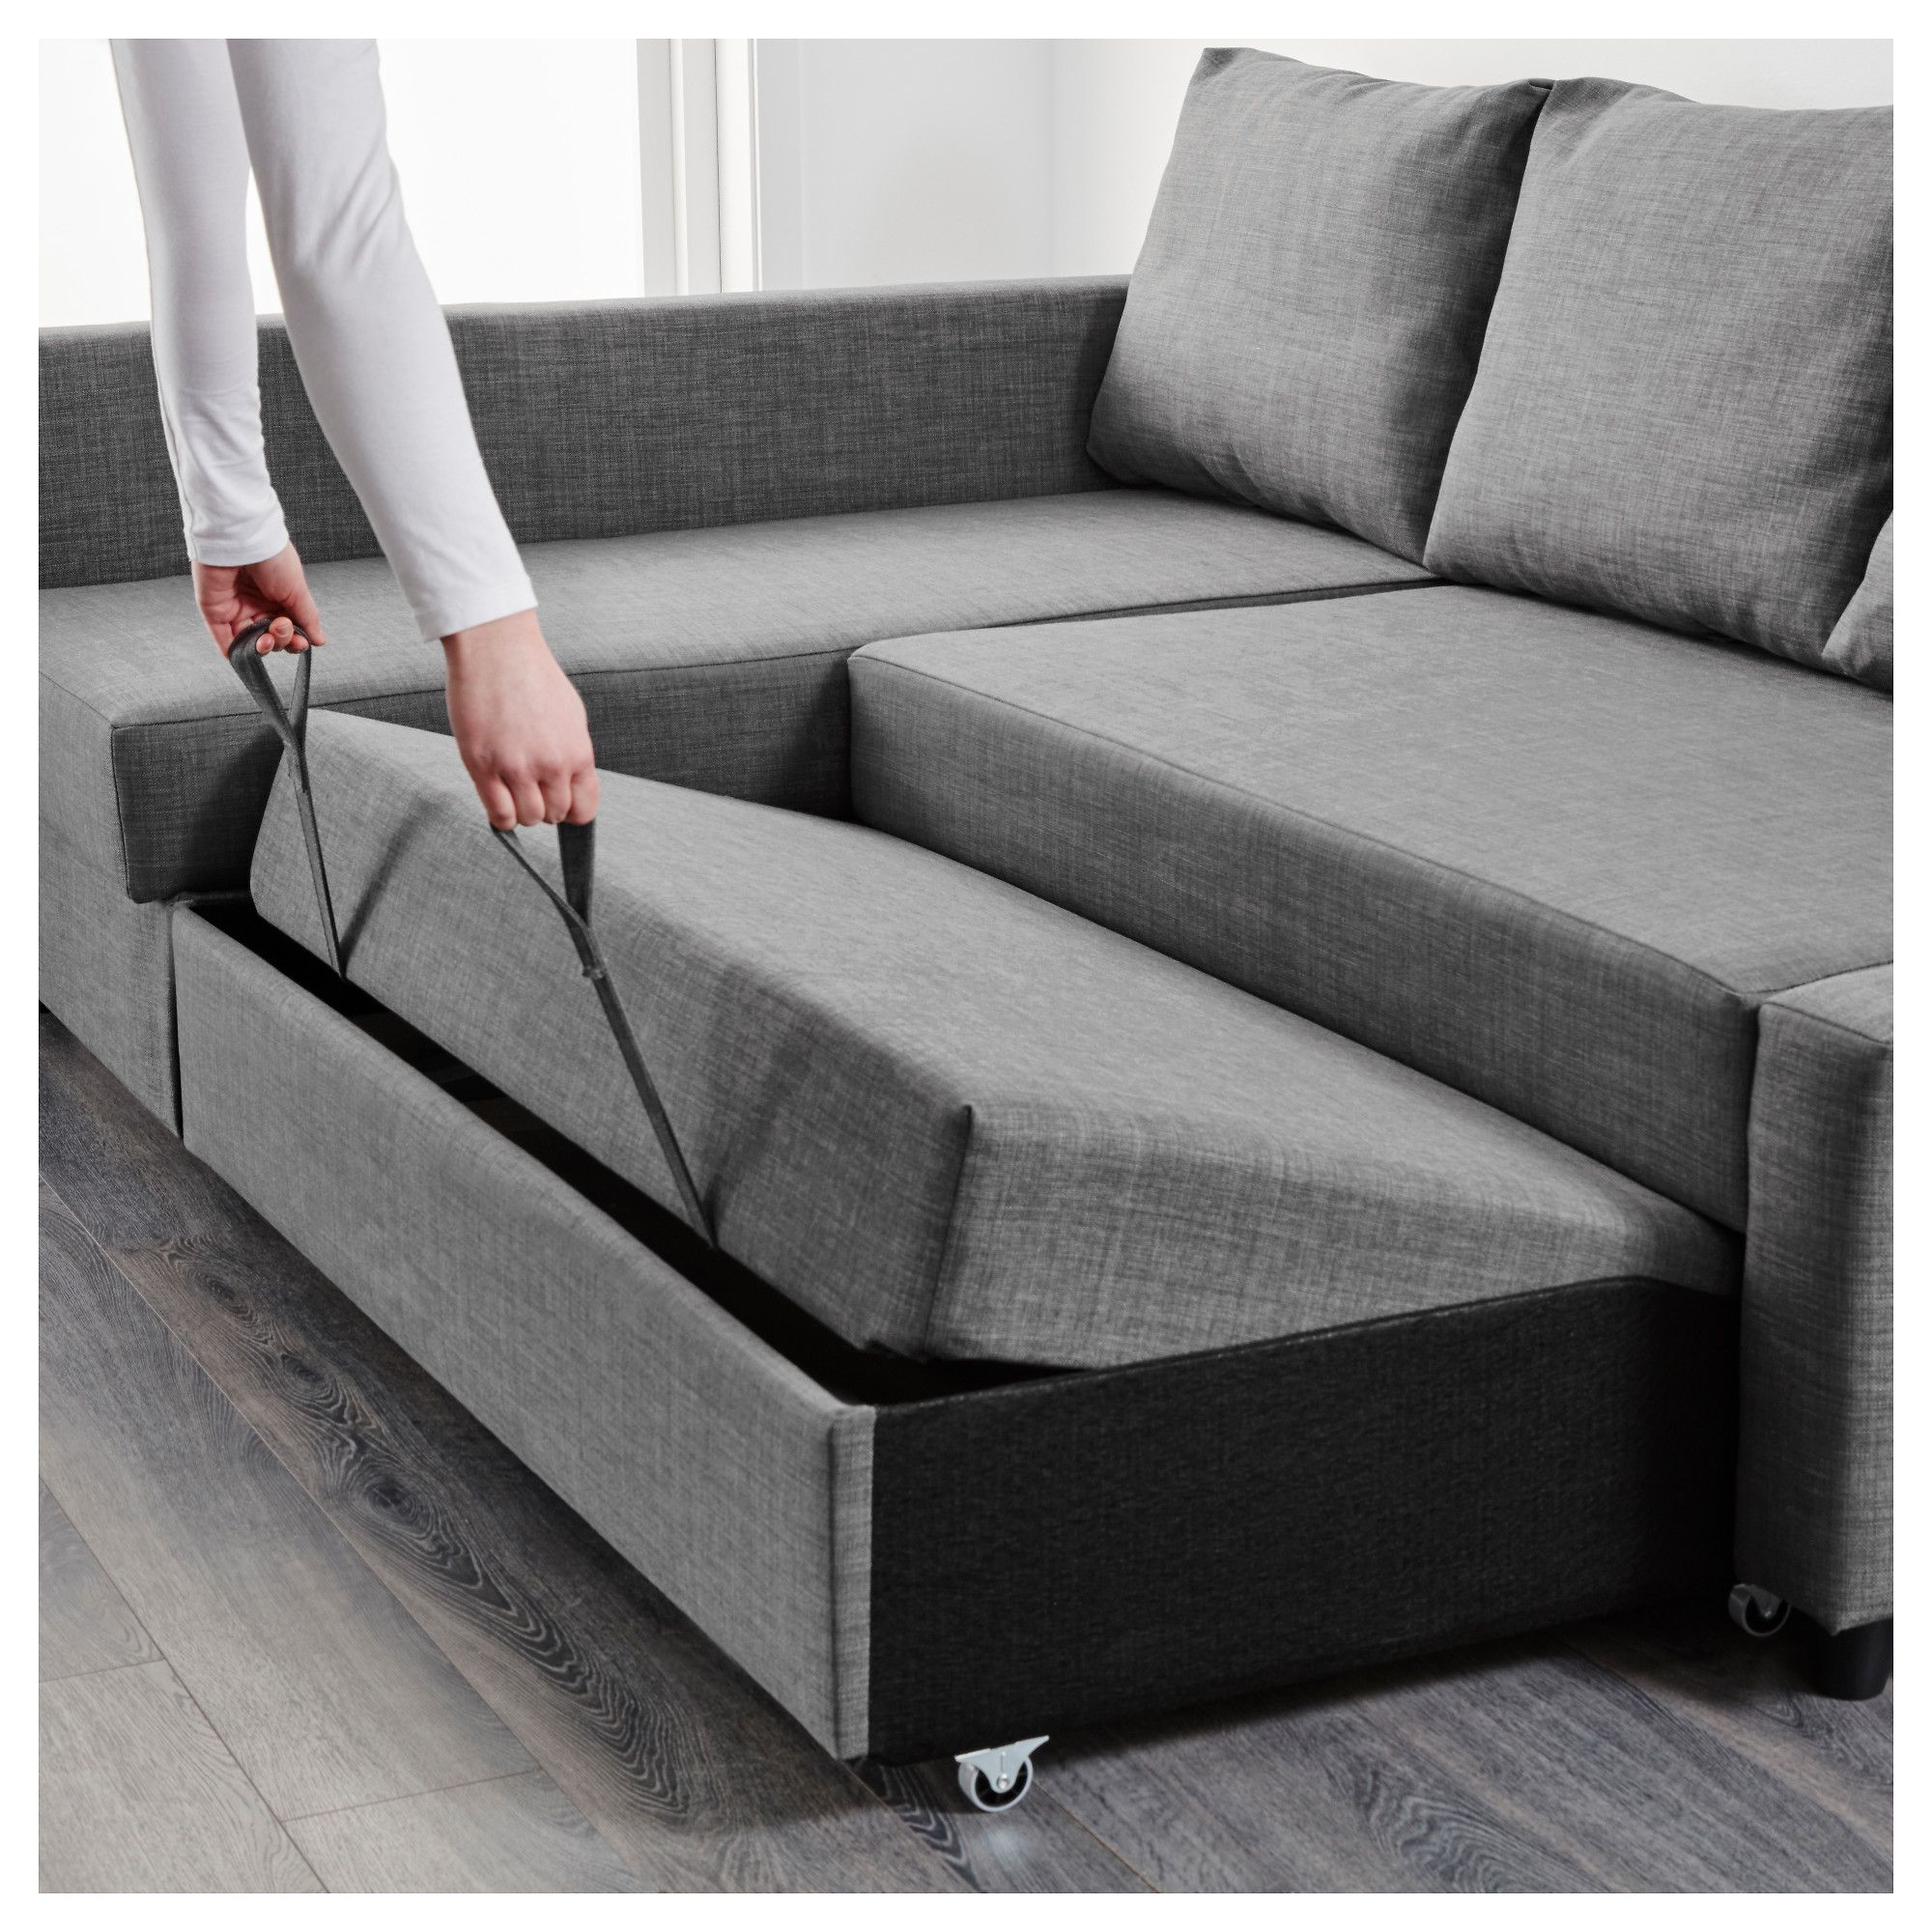 Ikea Friheten Corner Sofa Bed With Storage Skiftebo Dark Gray